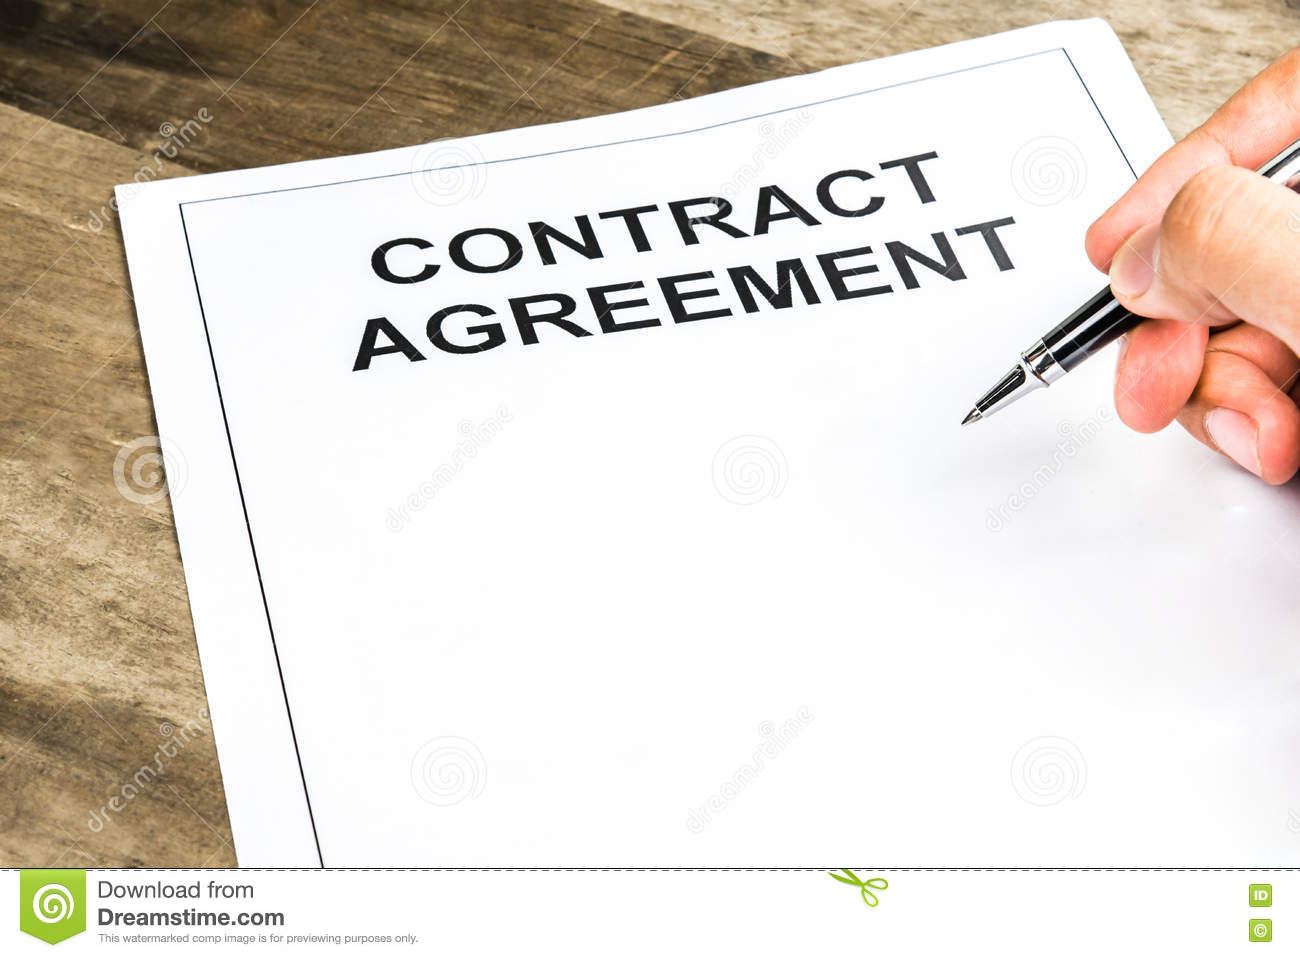 Signing On Blank Contract Agreement Paper Stock Photo - Image of ...